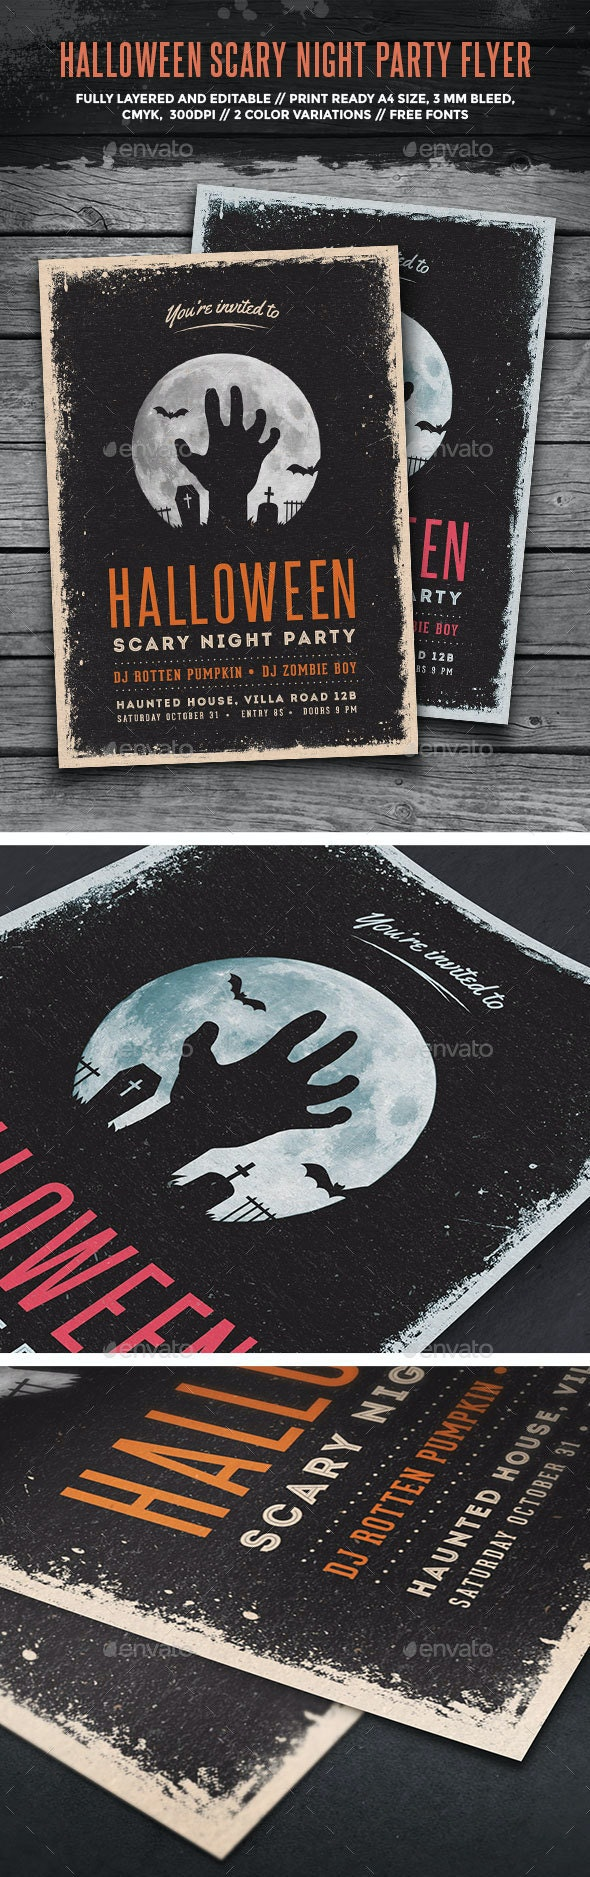 Halloween Scary Night Party Flyer - Holidays Events